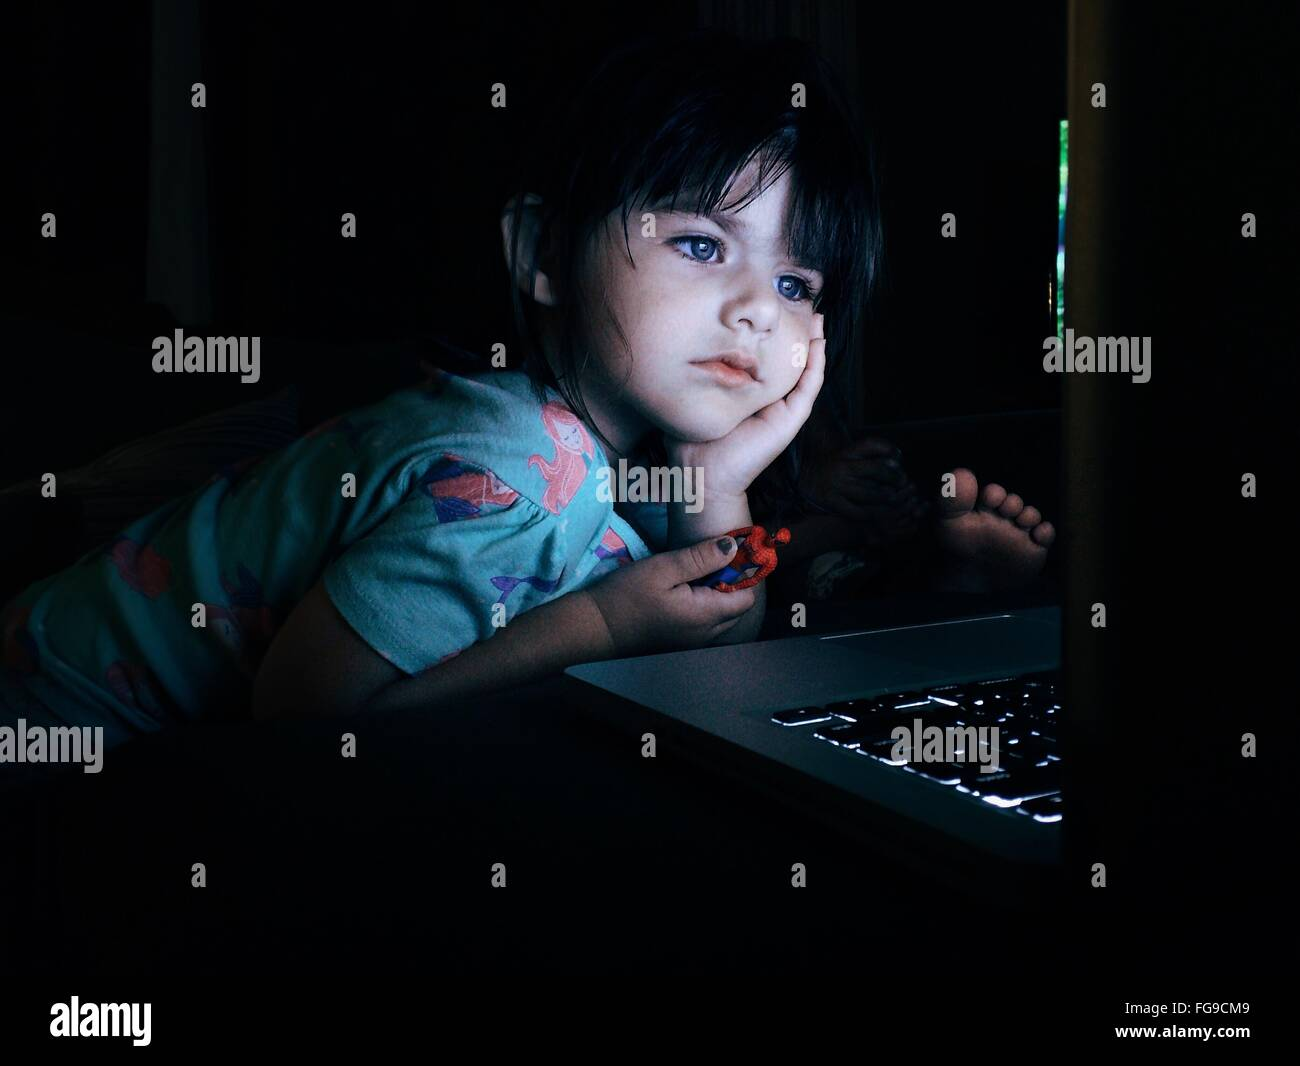 Girl With Hand On Chin Looking At Laptop - Stock Image